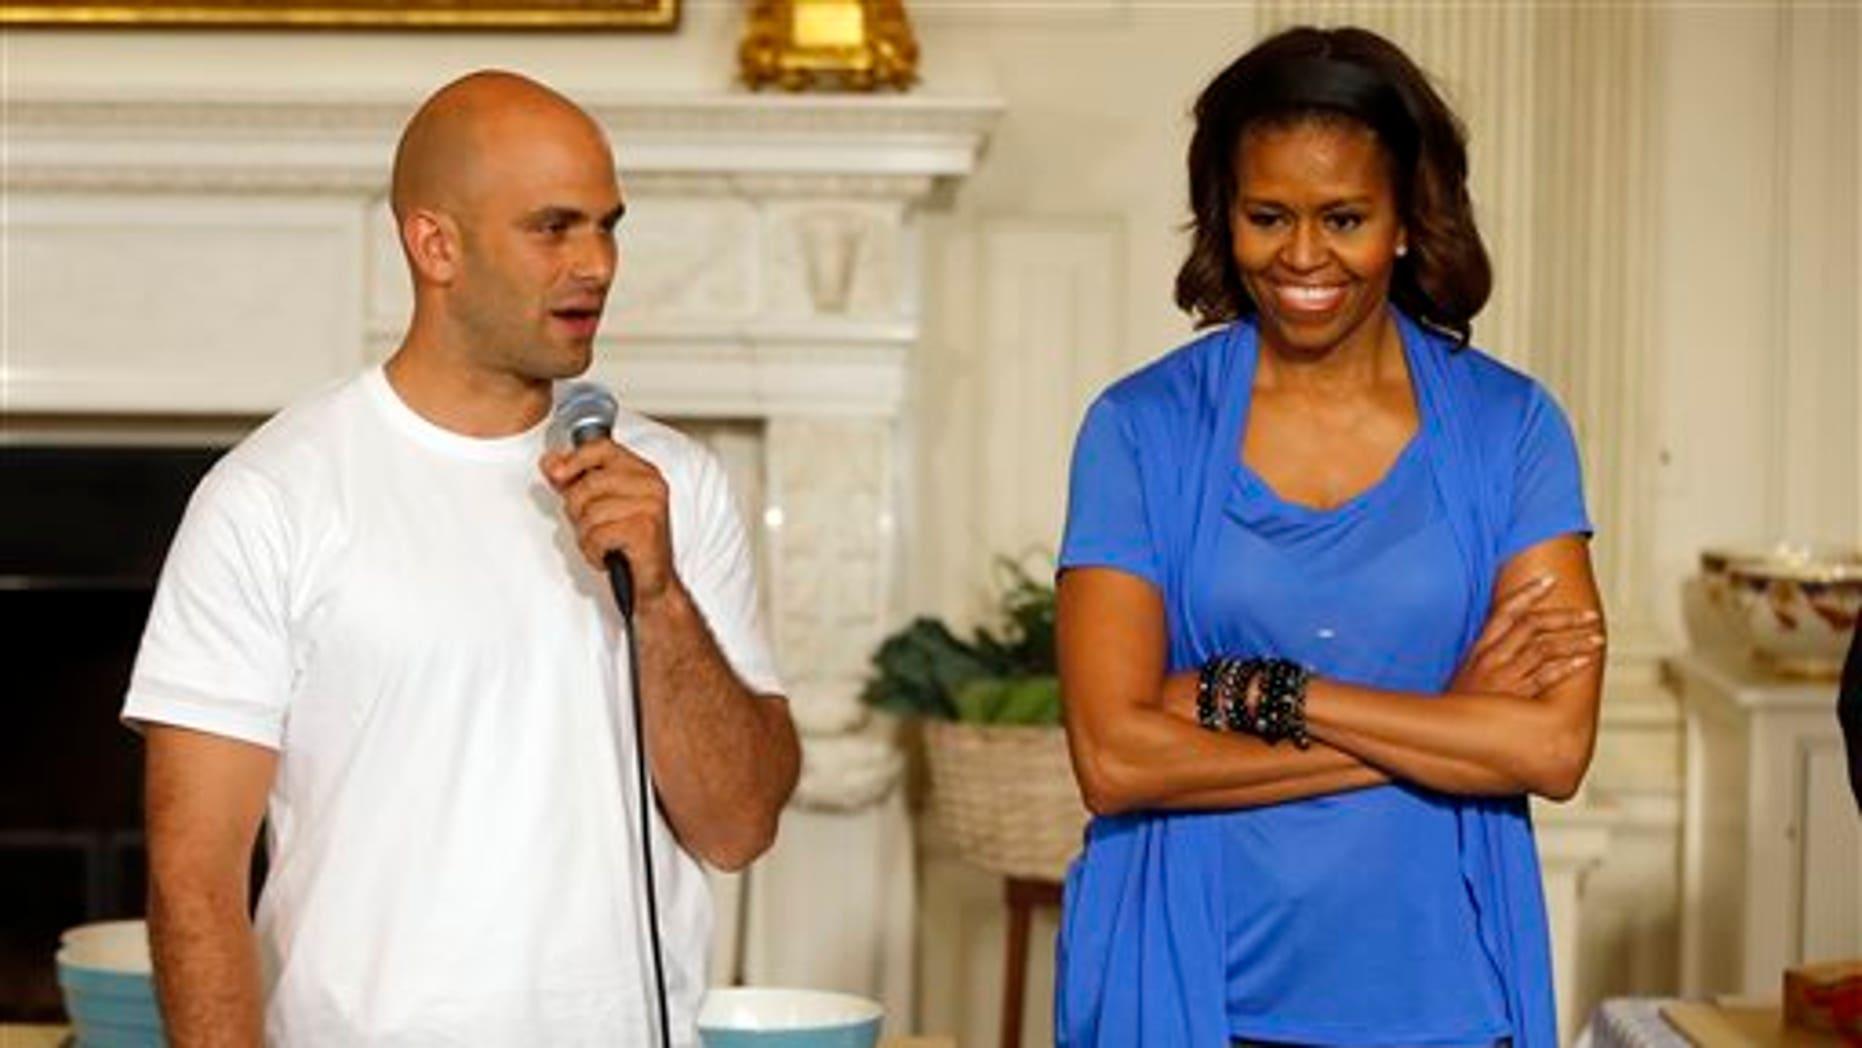 First lady Michelle Obama stands with Sam Kass, White House Senior Policy Adviser for Nutrition Policy, before they make salads from vegetables harvested from the White House garden with area students in the State Dining Room of the White House in Washington.